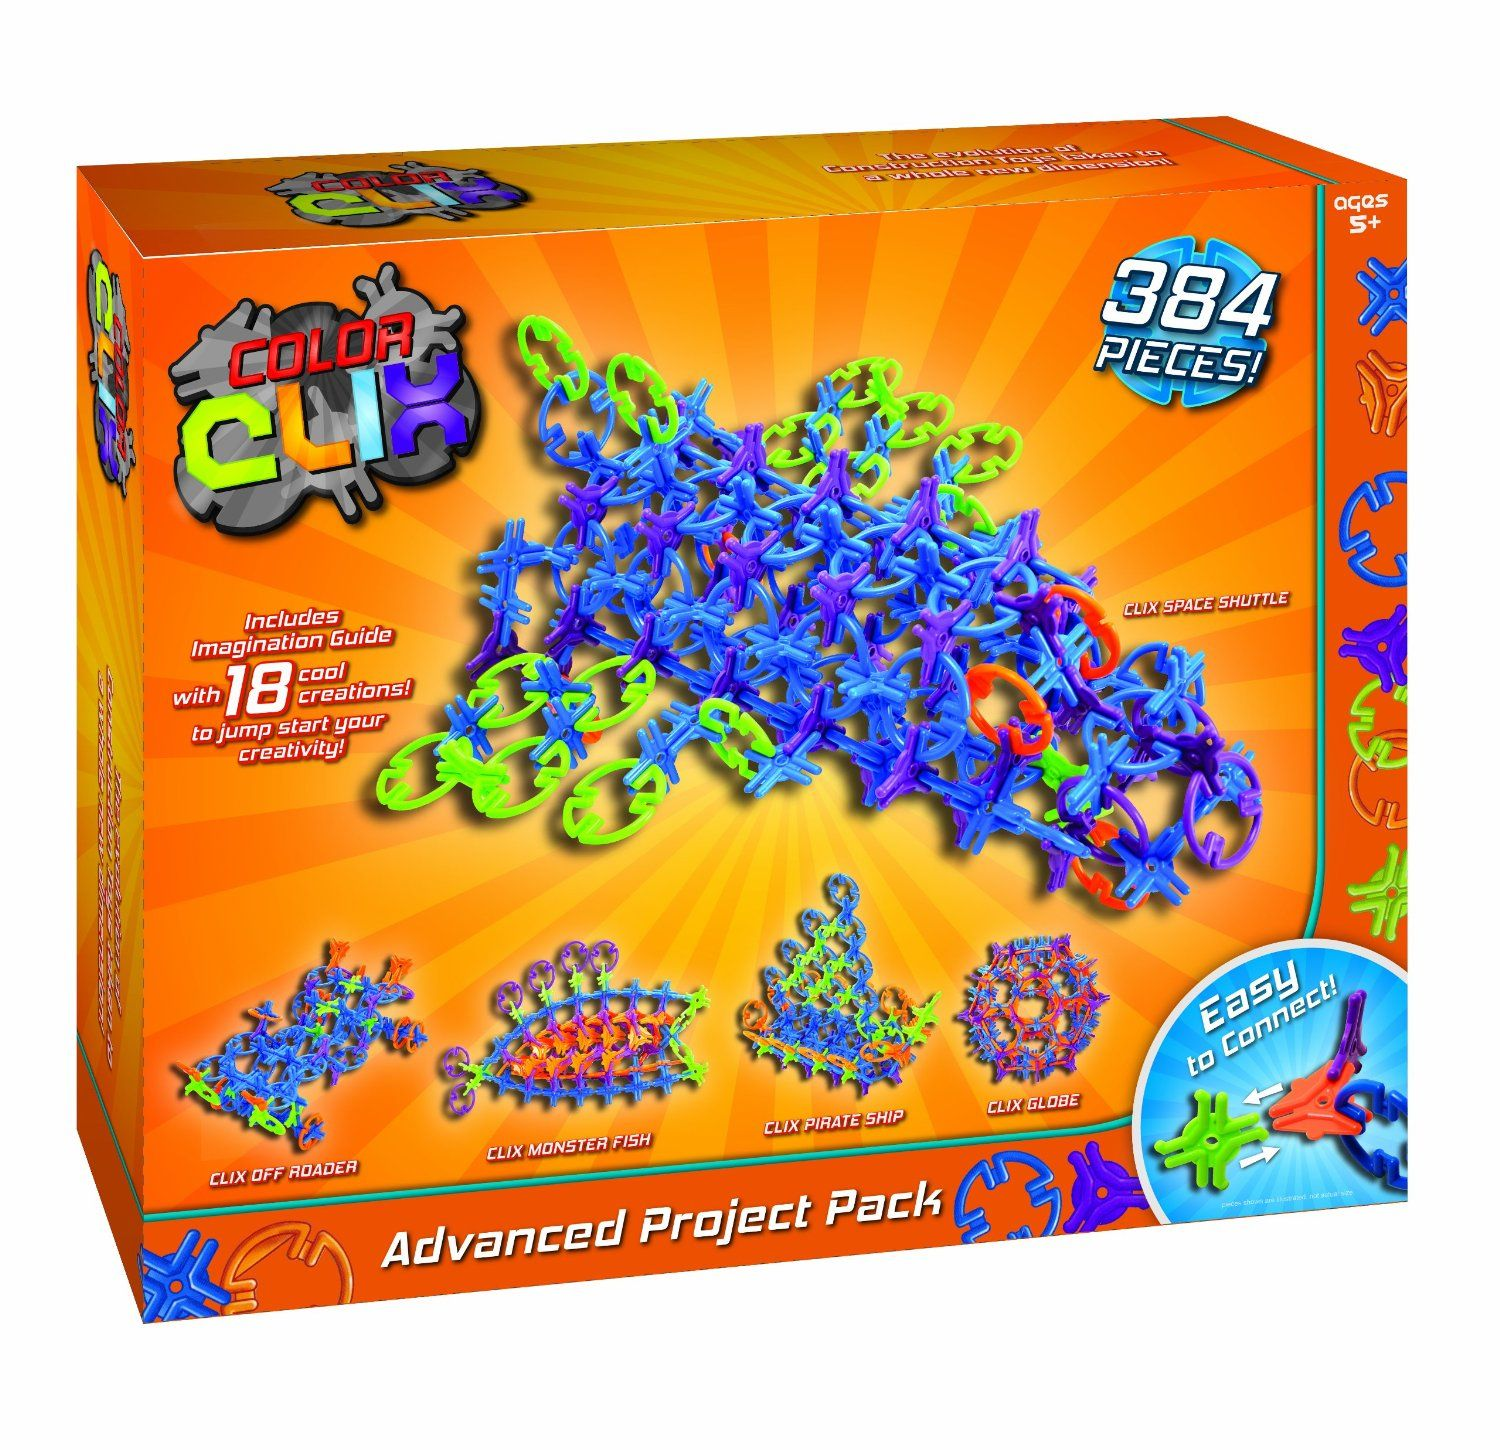 Color clix advanced project pack toys games